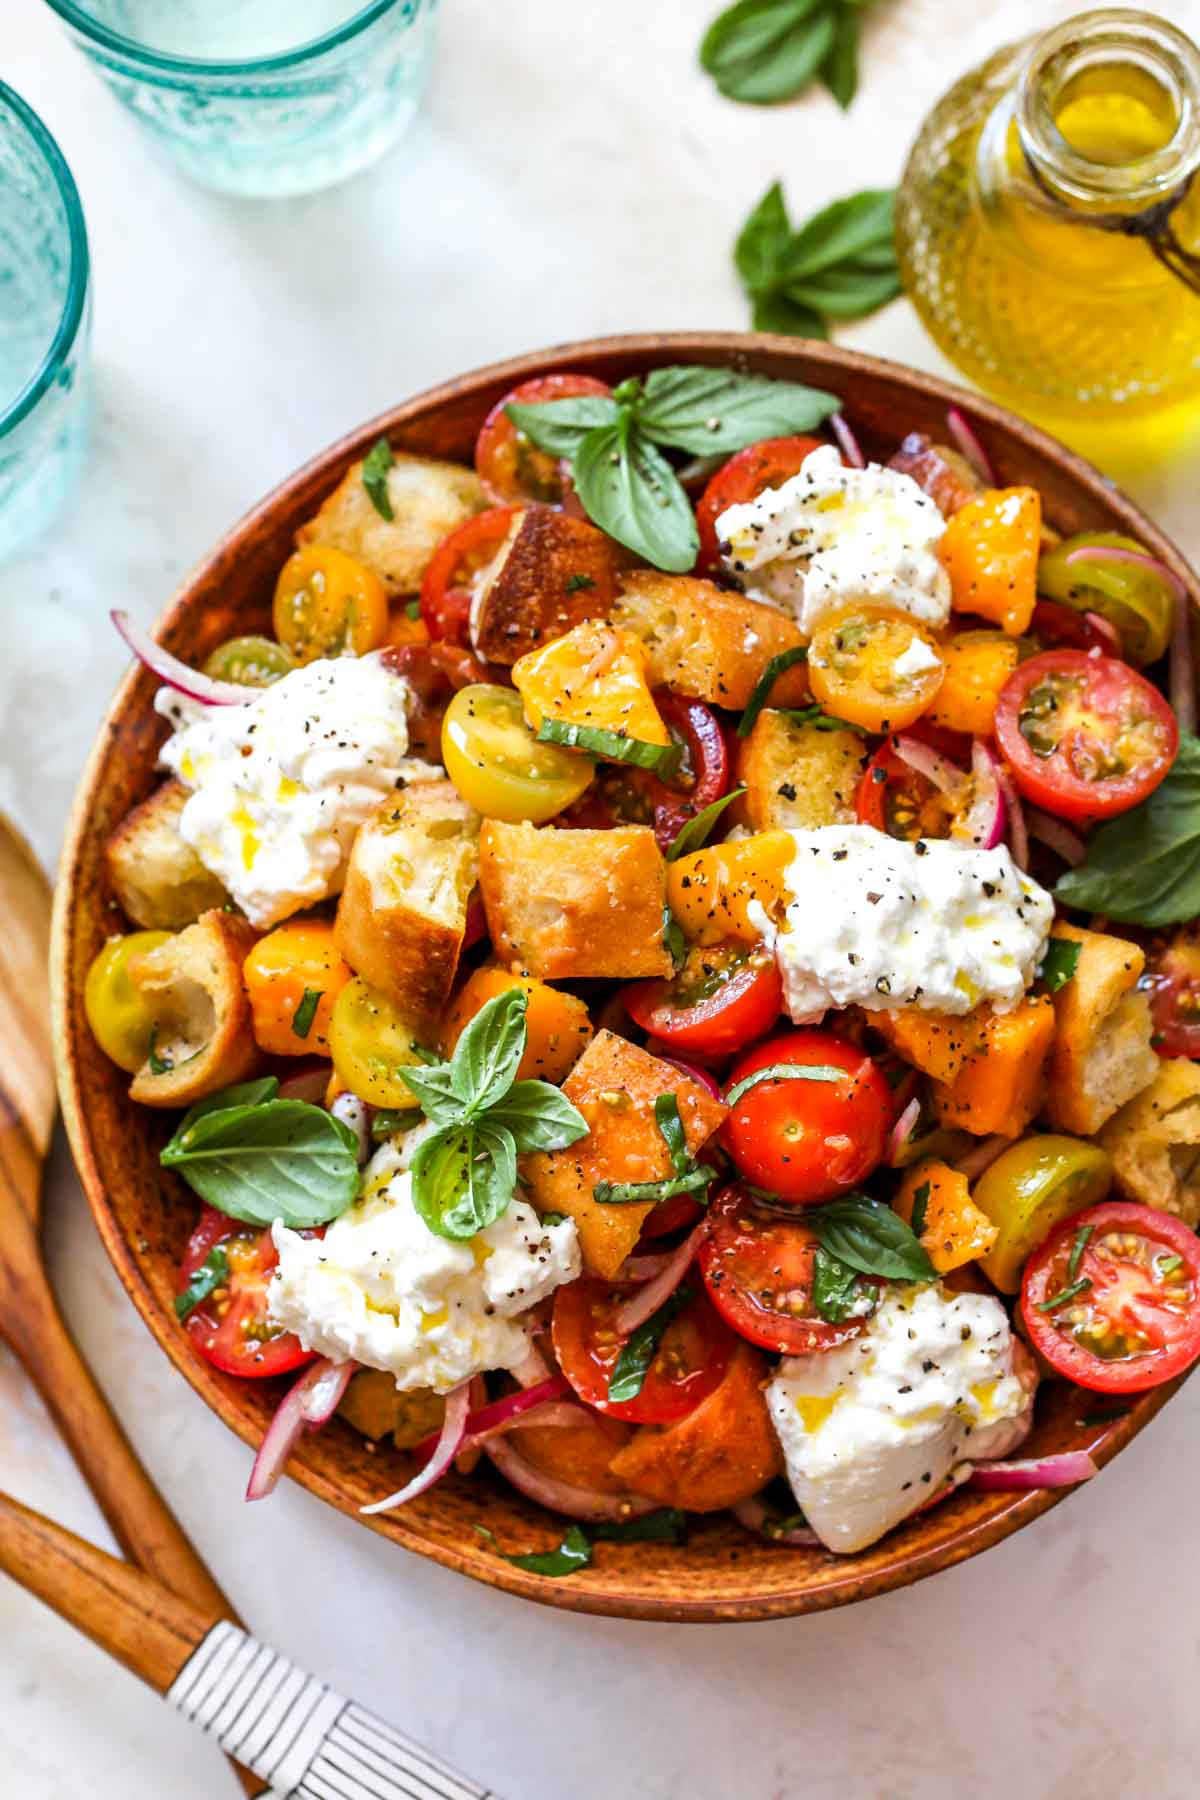 Tomatoes, bread, basil, and cheese in an orange bowl